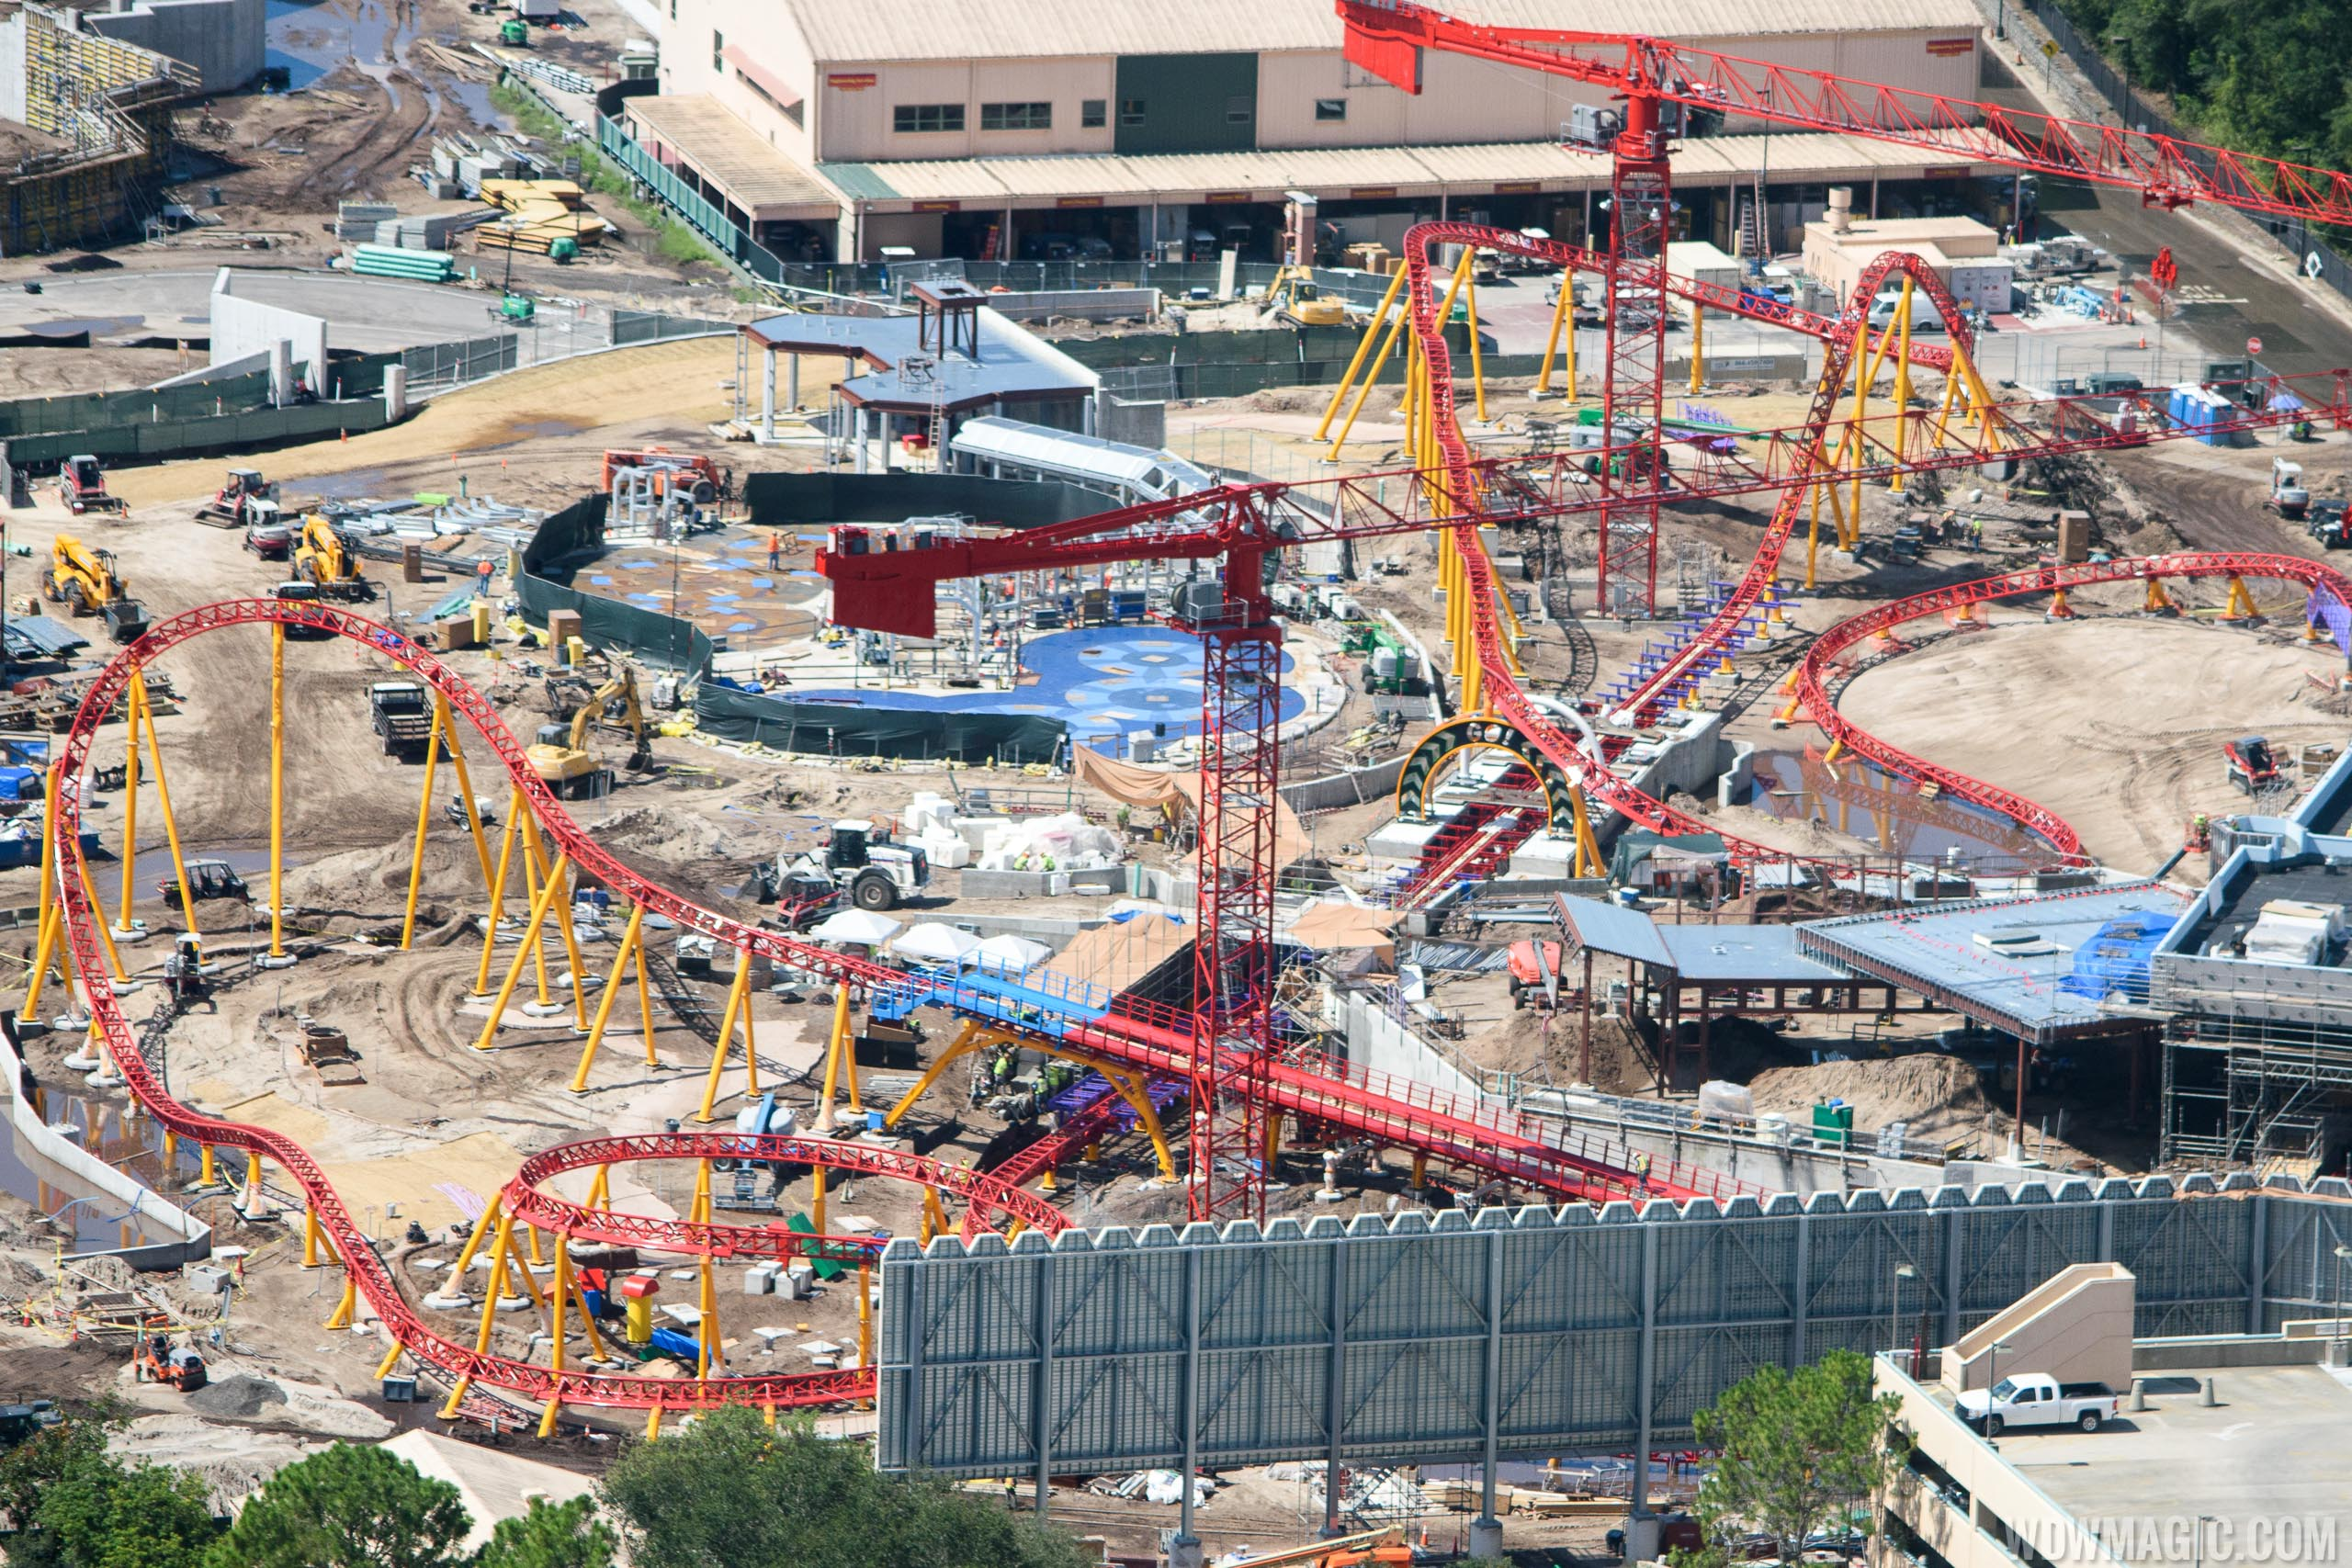 Slinky Dog Coaster construction at Toy Story Land